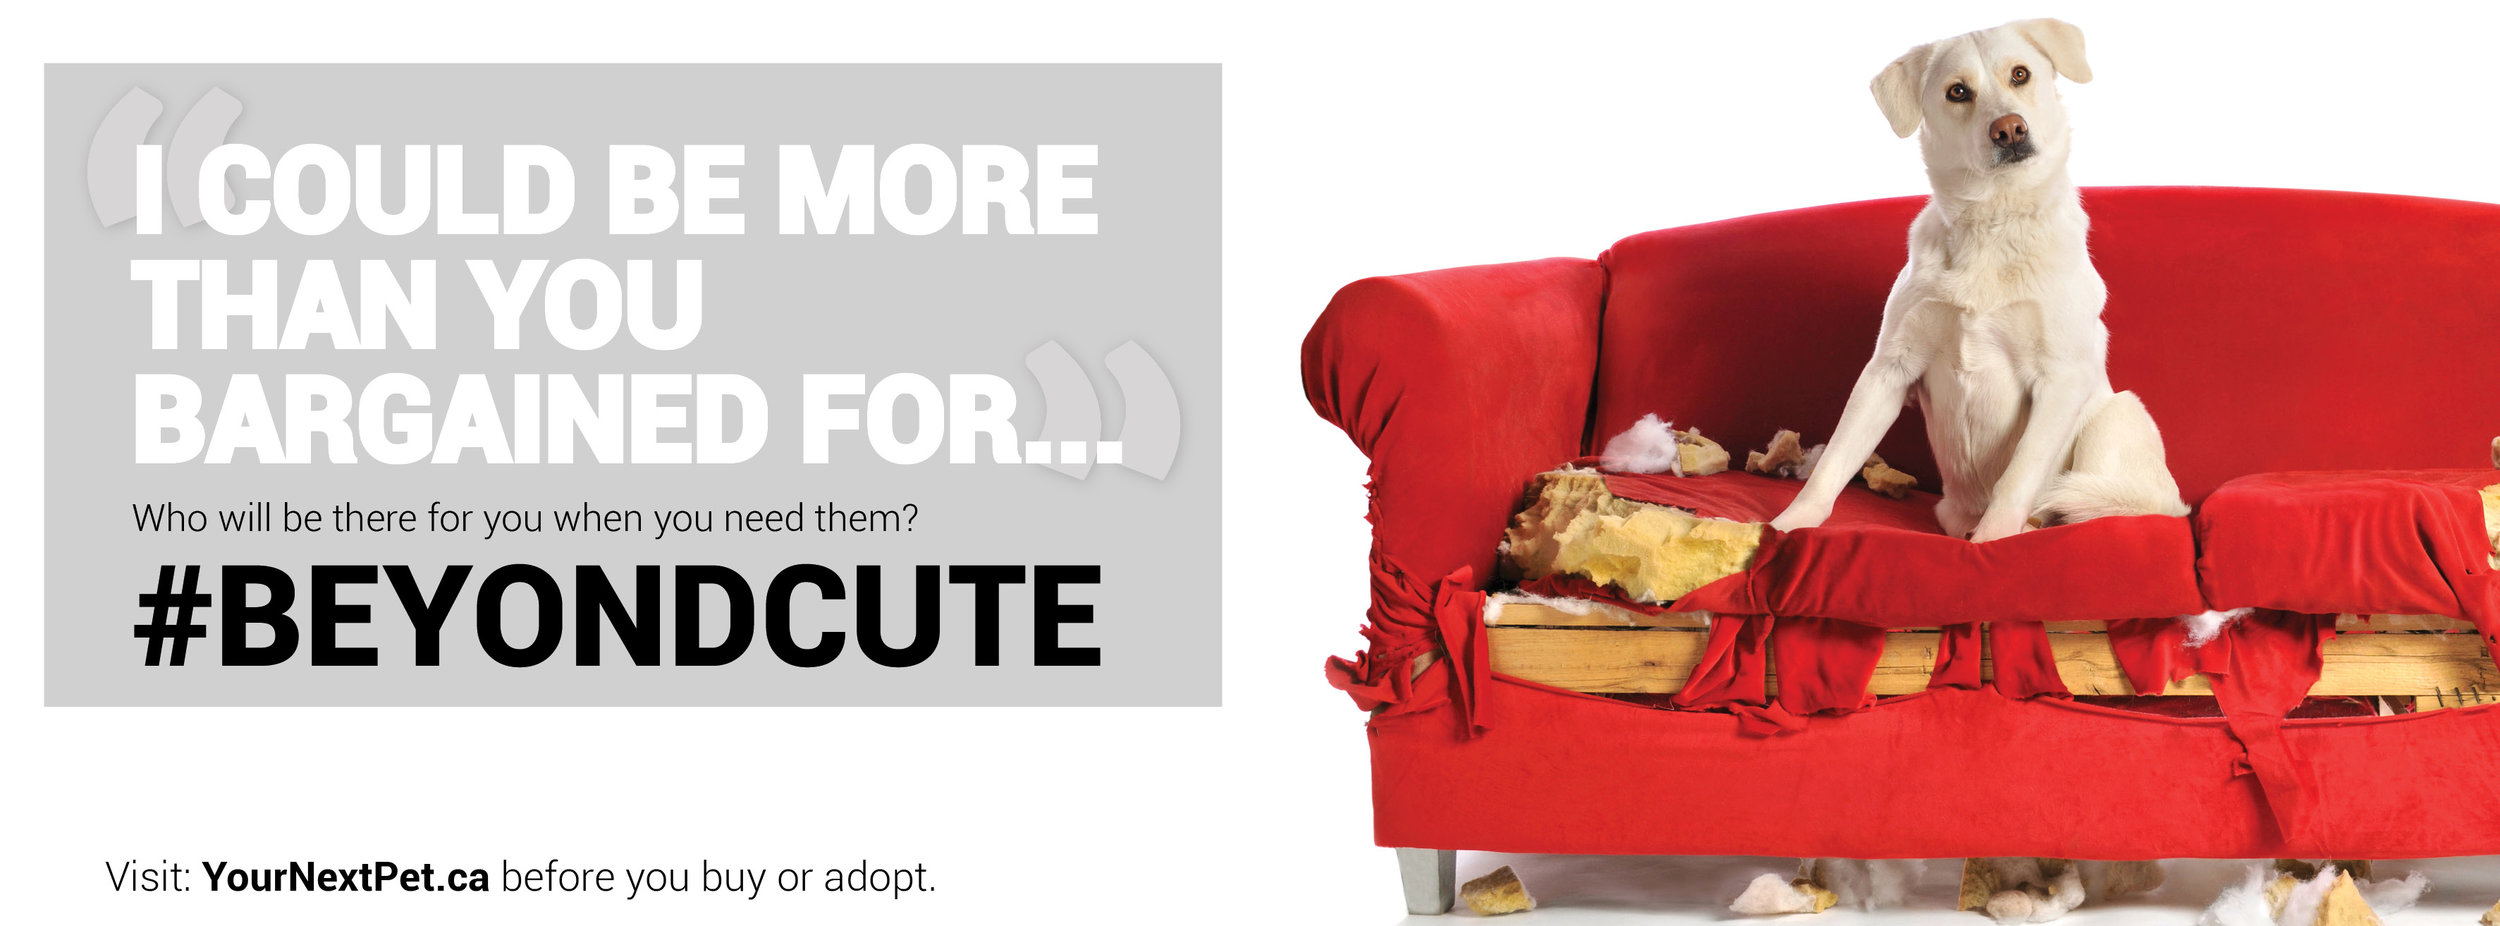 #BeyondCute Facebook Banner - I could be more than you bargained for - BLOCKING 2019.jpg